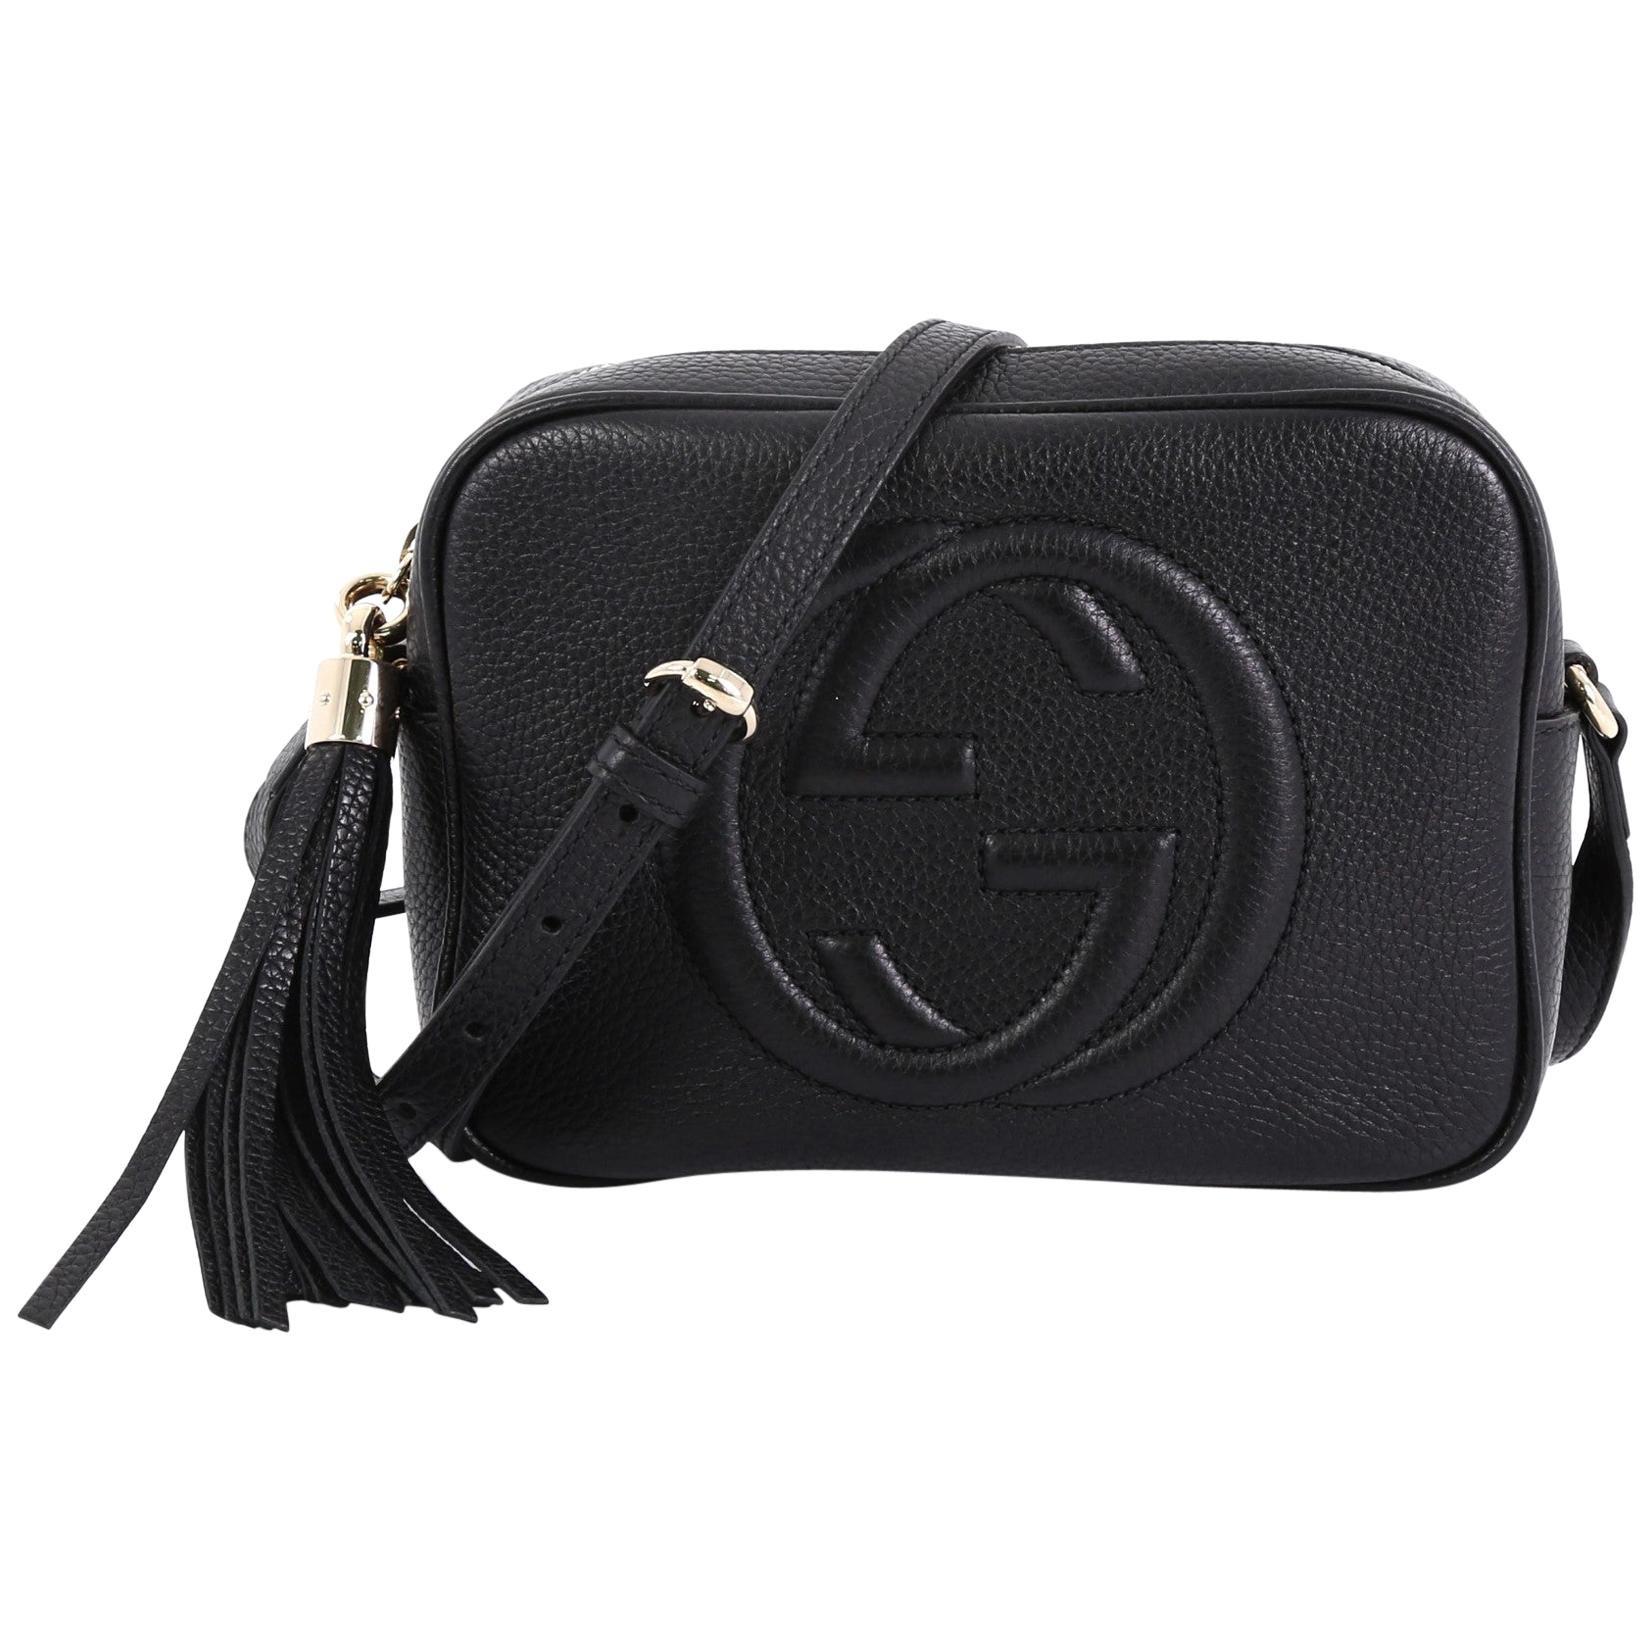 f9e616edd Vintage Gucci Crossbody Bags and Messenger Bags - 260 For Sale at 1stdibs